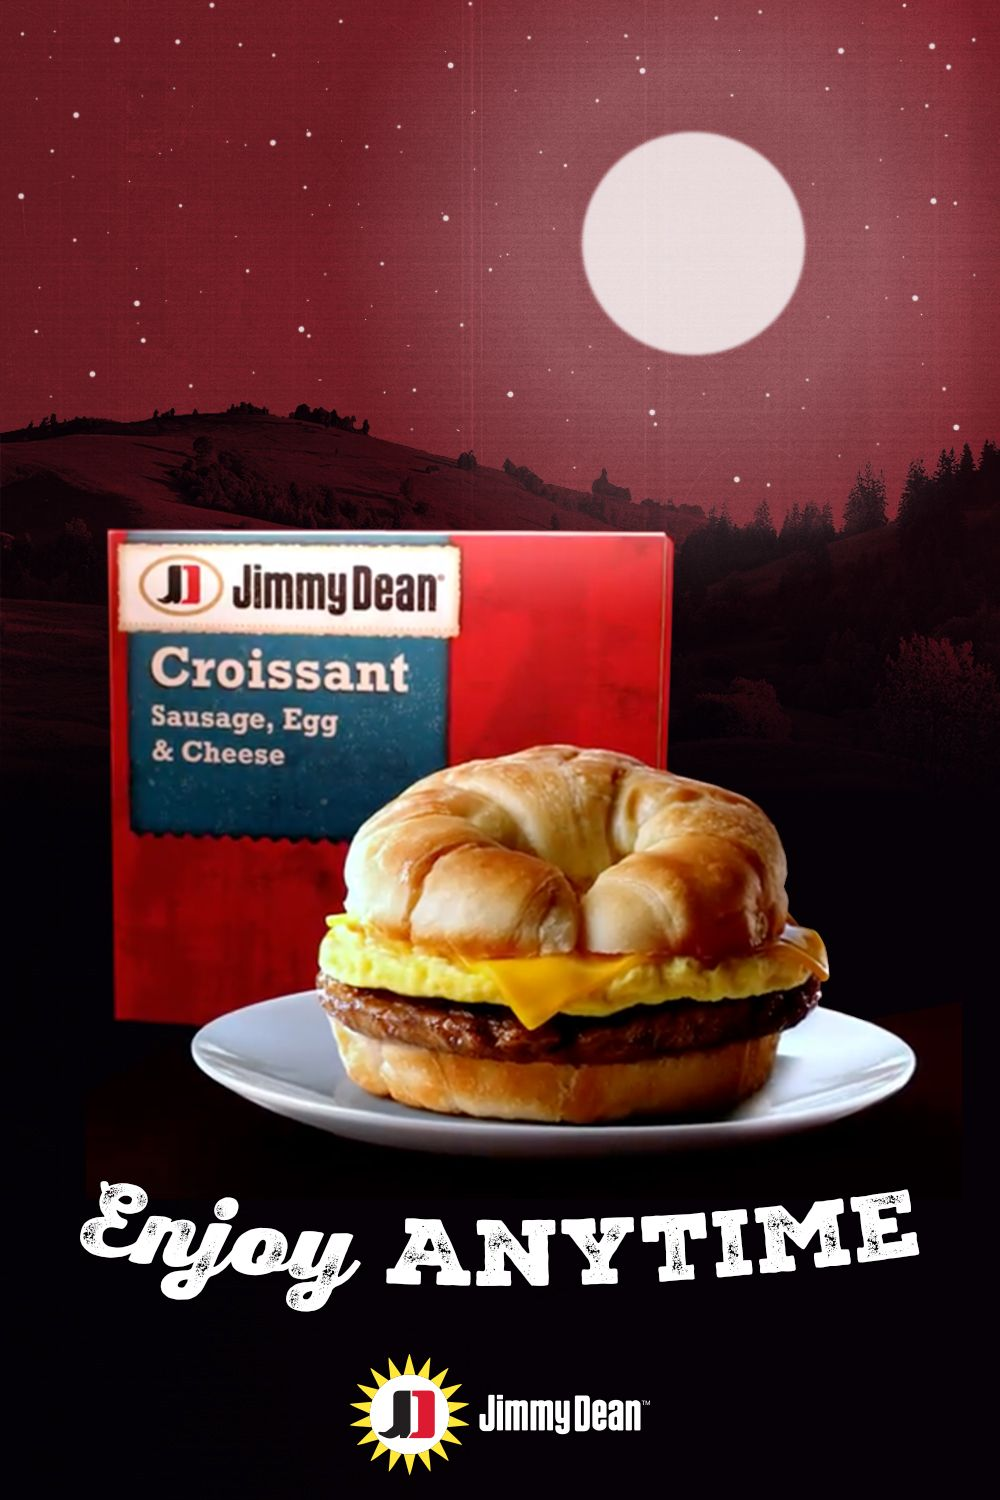 Enjoy jimmy dean anytime sausage egg and cheese